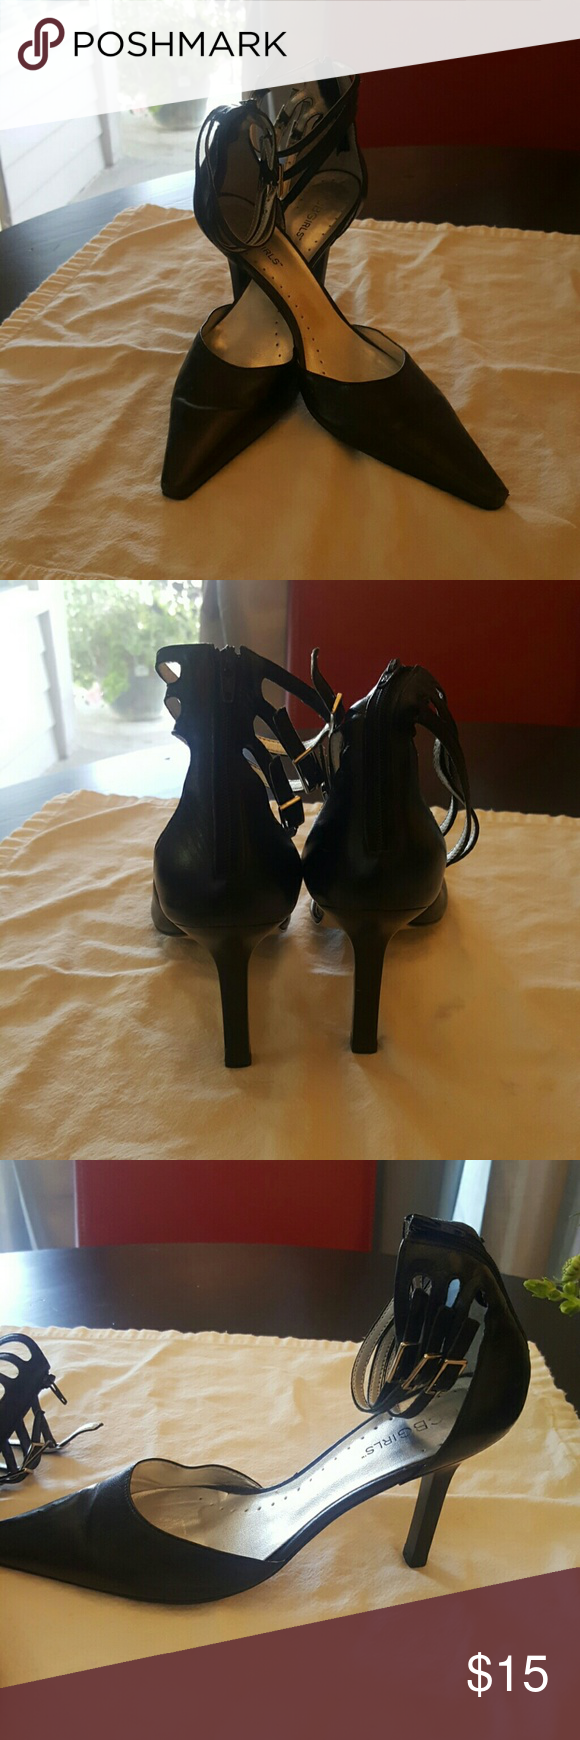 BCBGIRLS Pumps Black 3.5 inch heels.  Worn some, but plenty of life left.  Foot injury prevents from ever wearing heels again.   So sad.... Shoes Heels